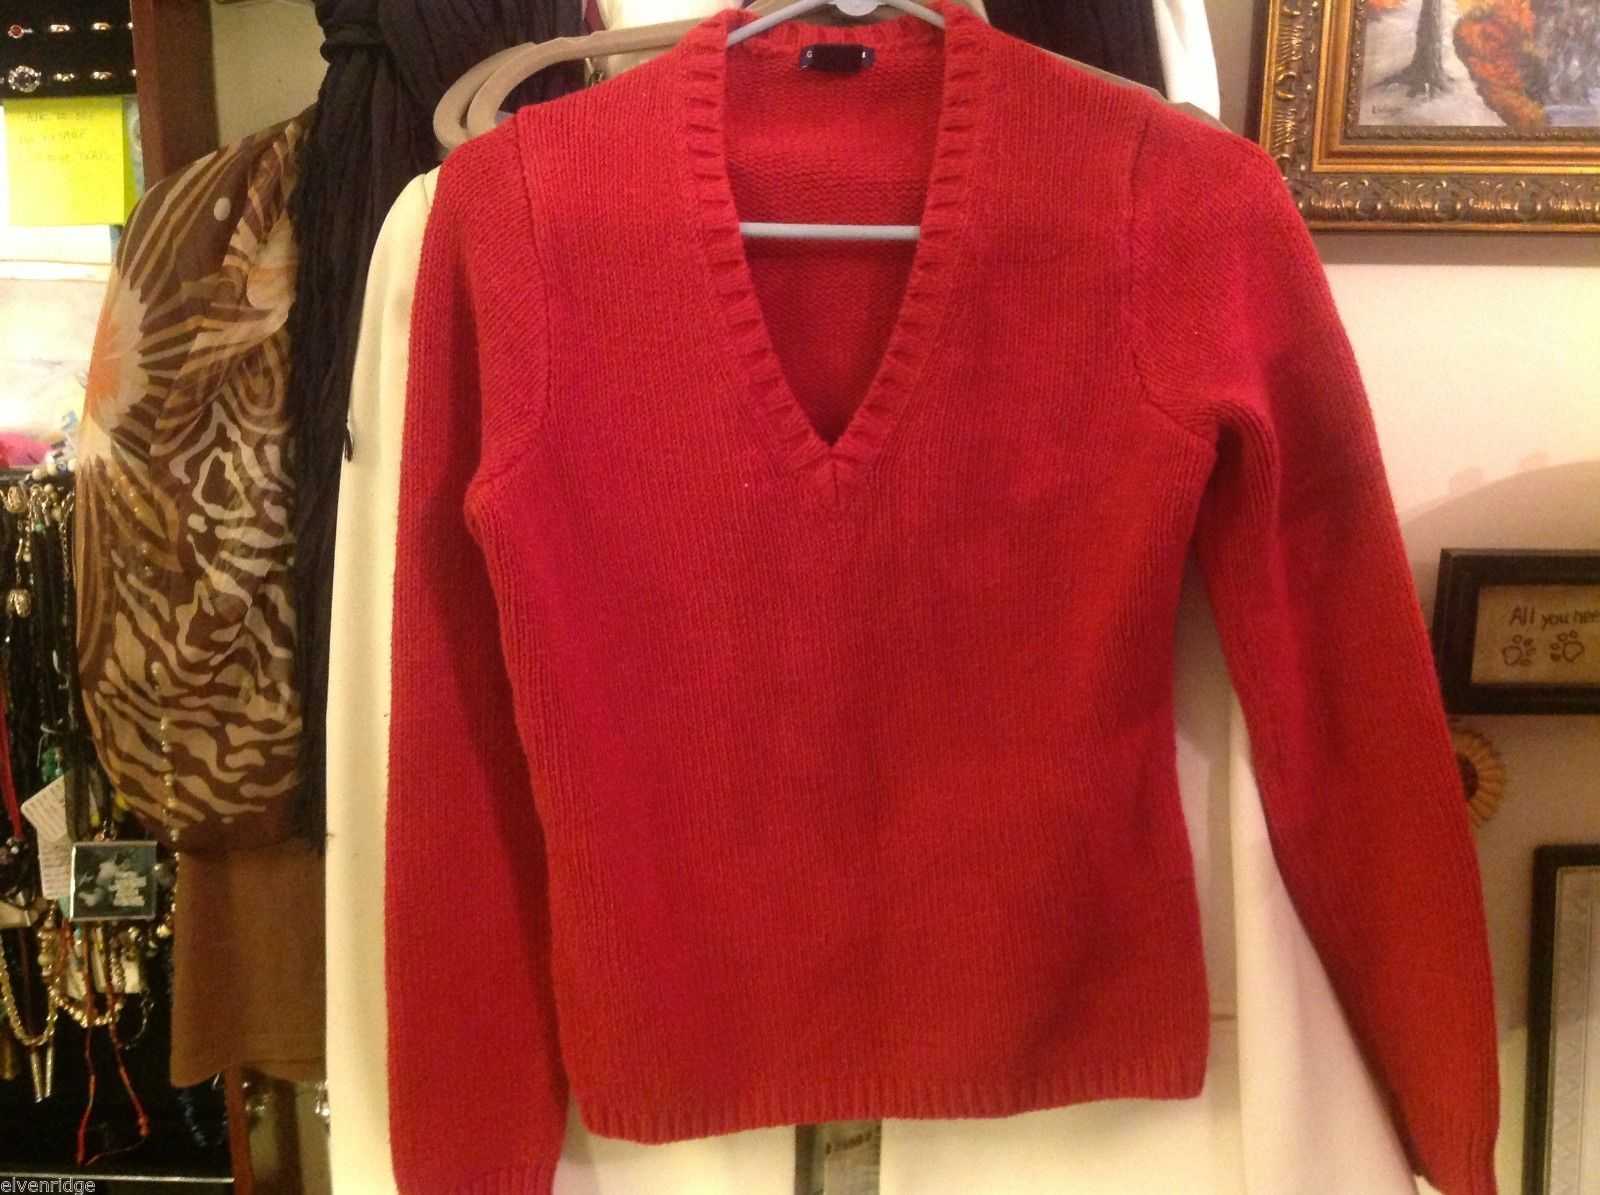 SMALL gap sweater stretch fit red cable knit V-neck